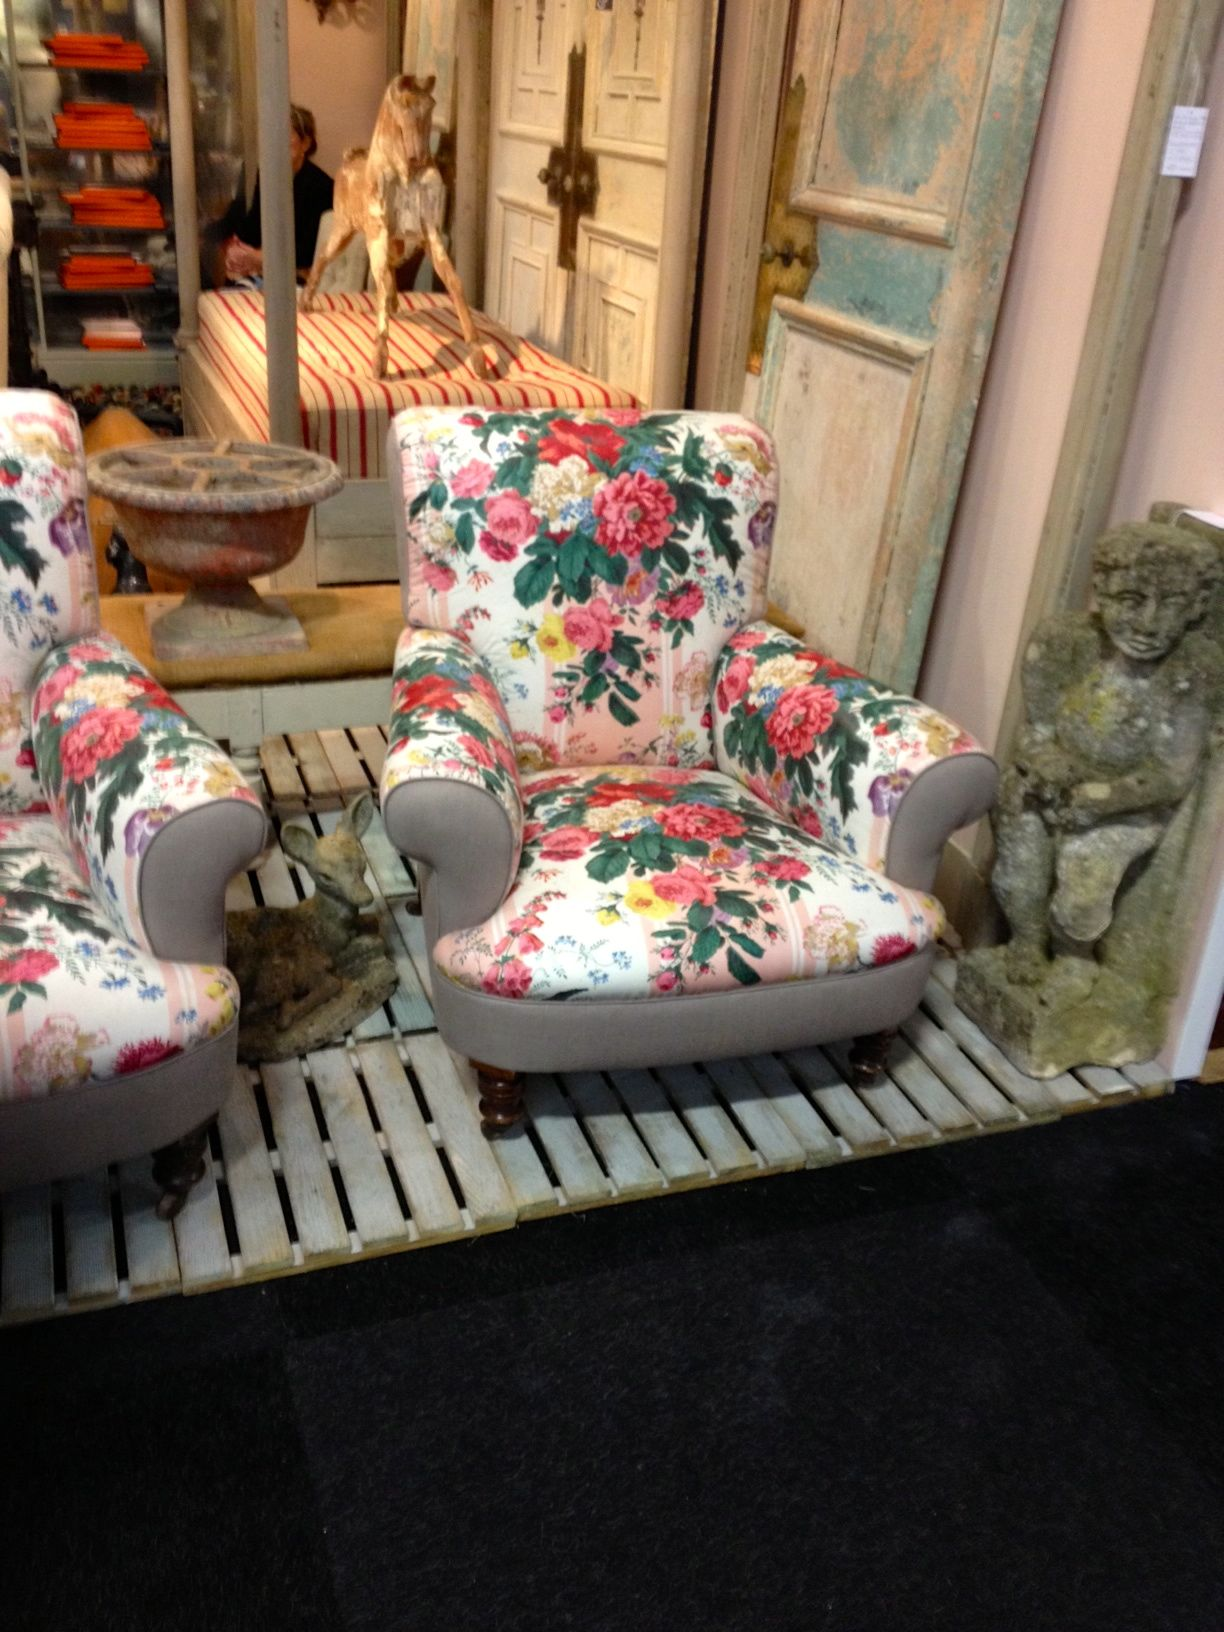 Floral Furniture   Google Search Wouldnu0027t This Make A Great Reading Chair?